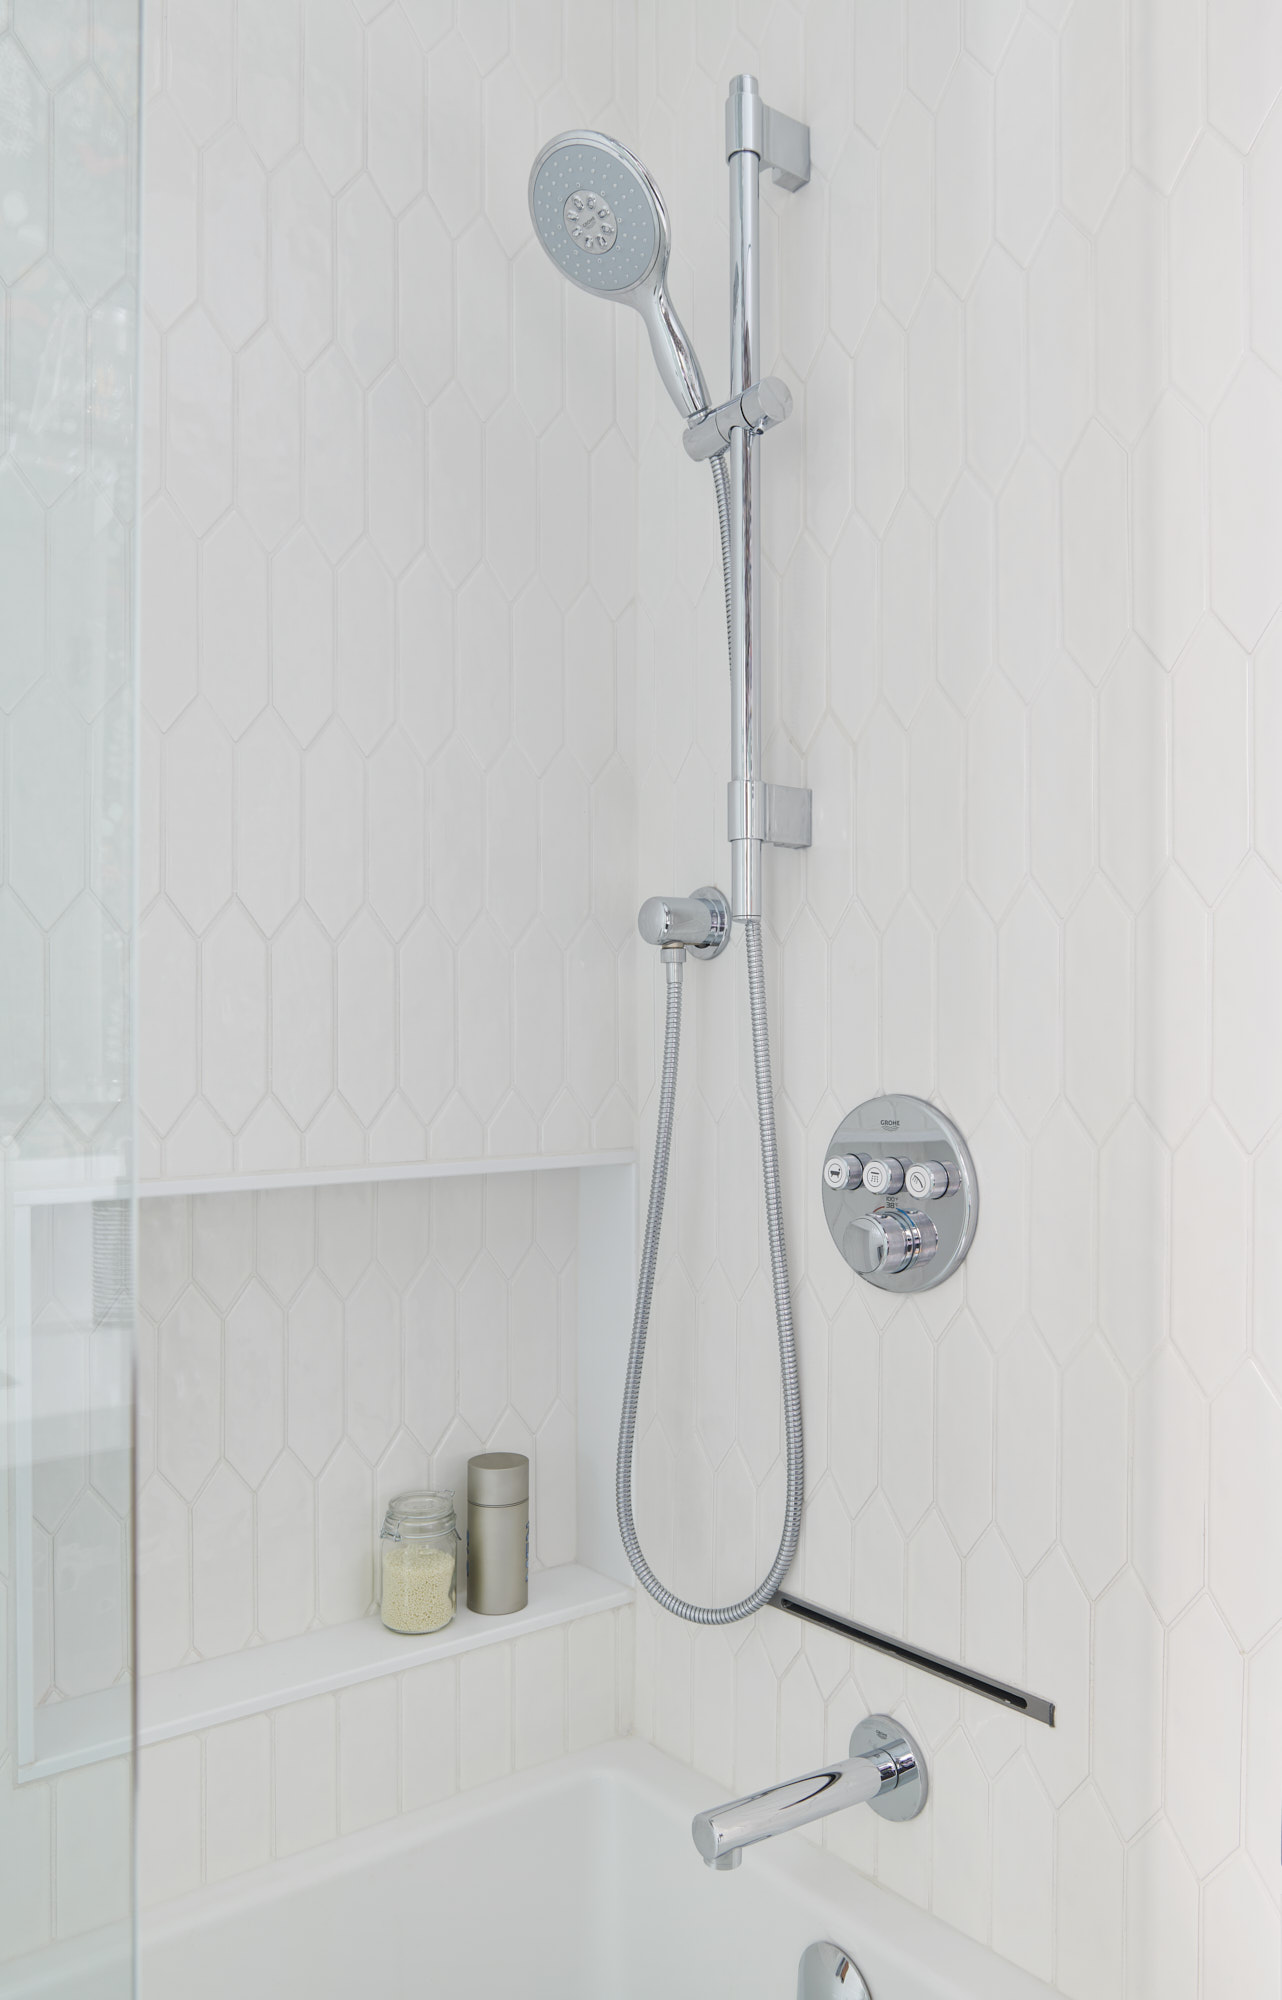 Copy of Grohe handheld shower head and hardware